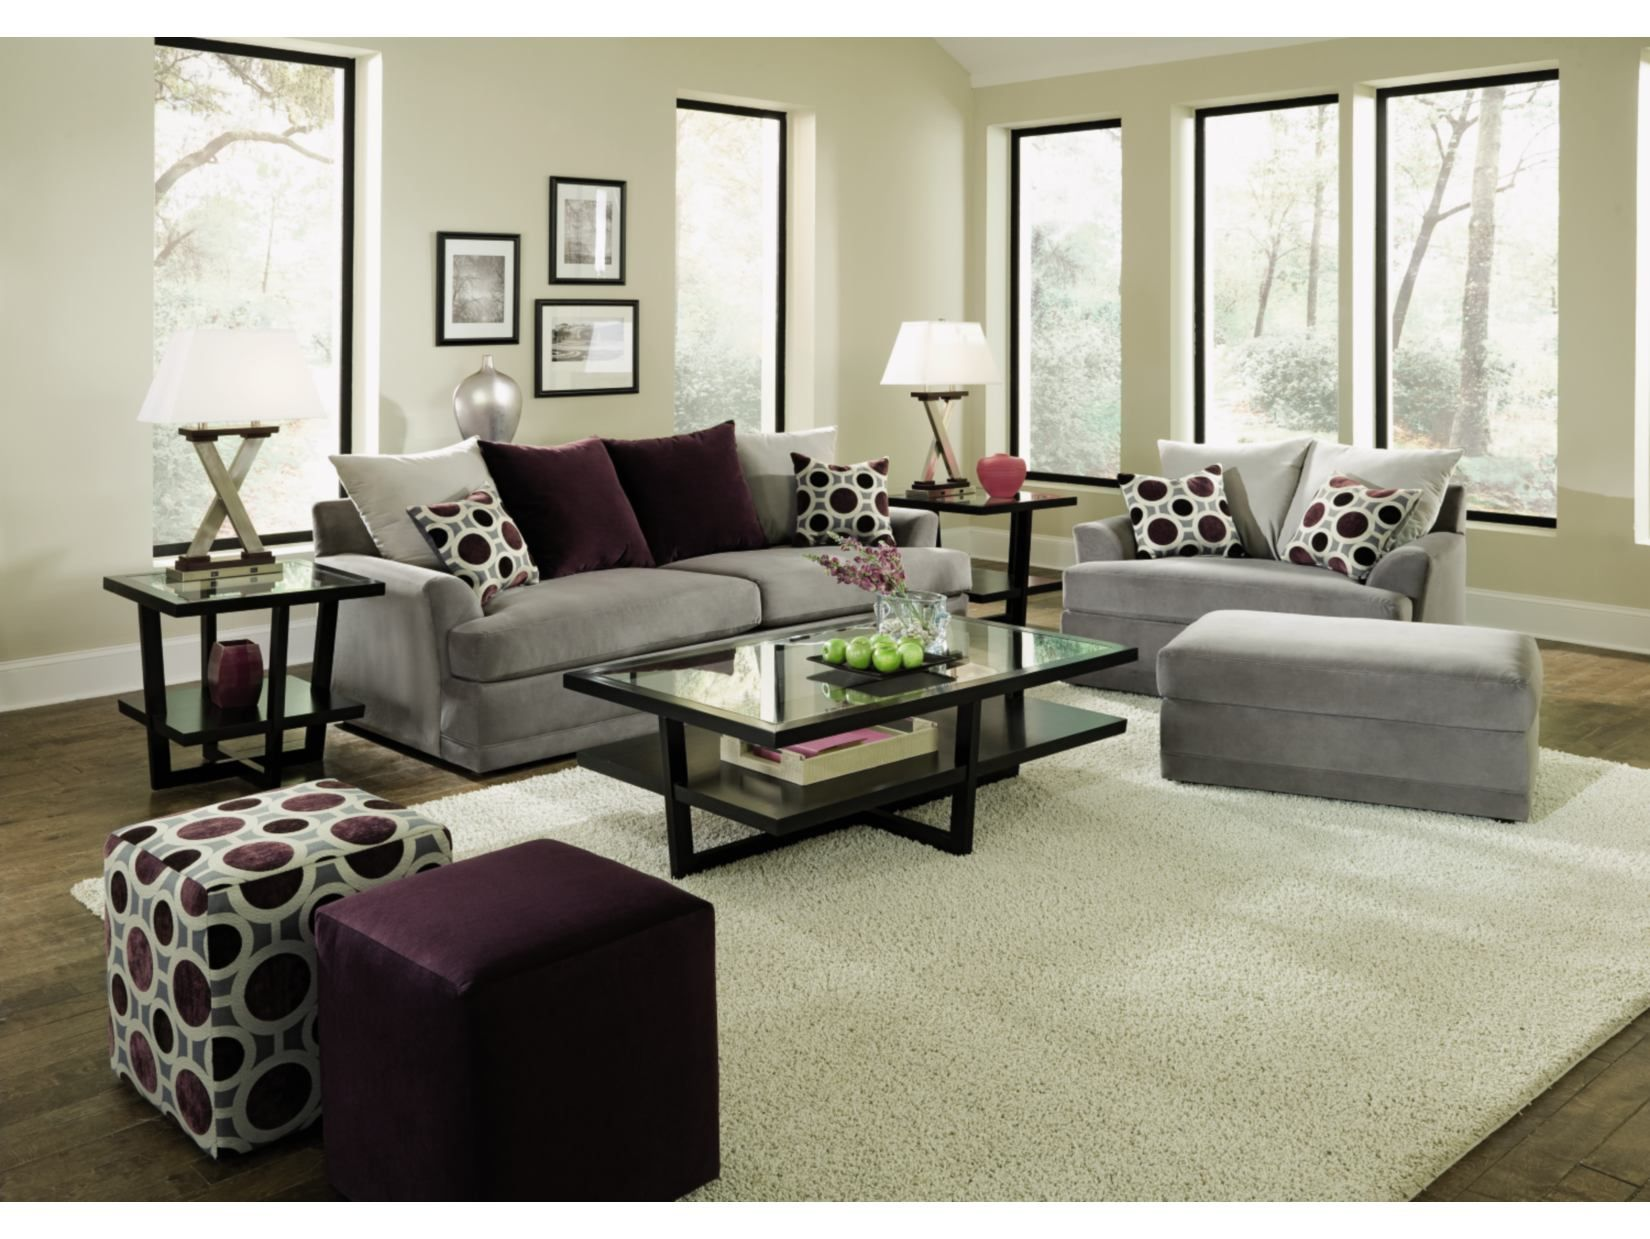 Radiance Pewter Sofa   Value City Furniture Grey Sofa And Love Seat Purple  Chair And A 1/2 And Ottoman